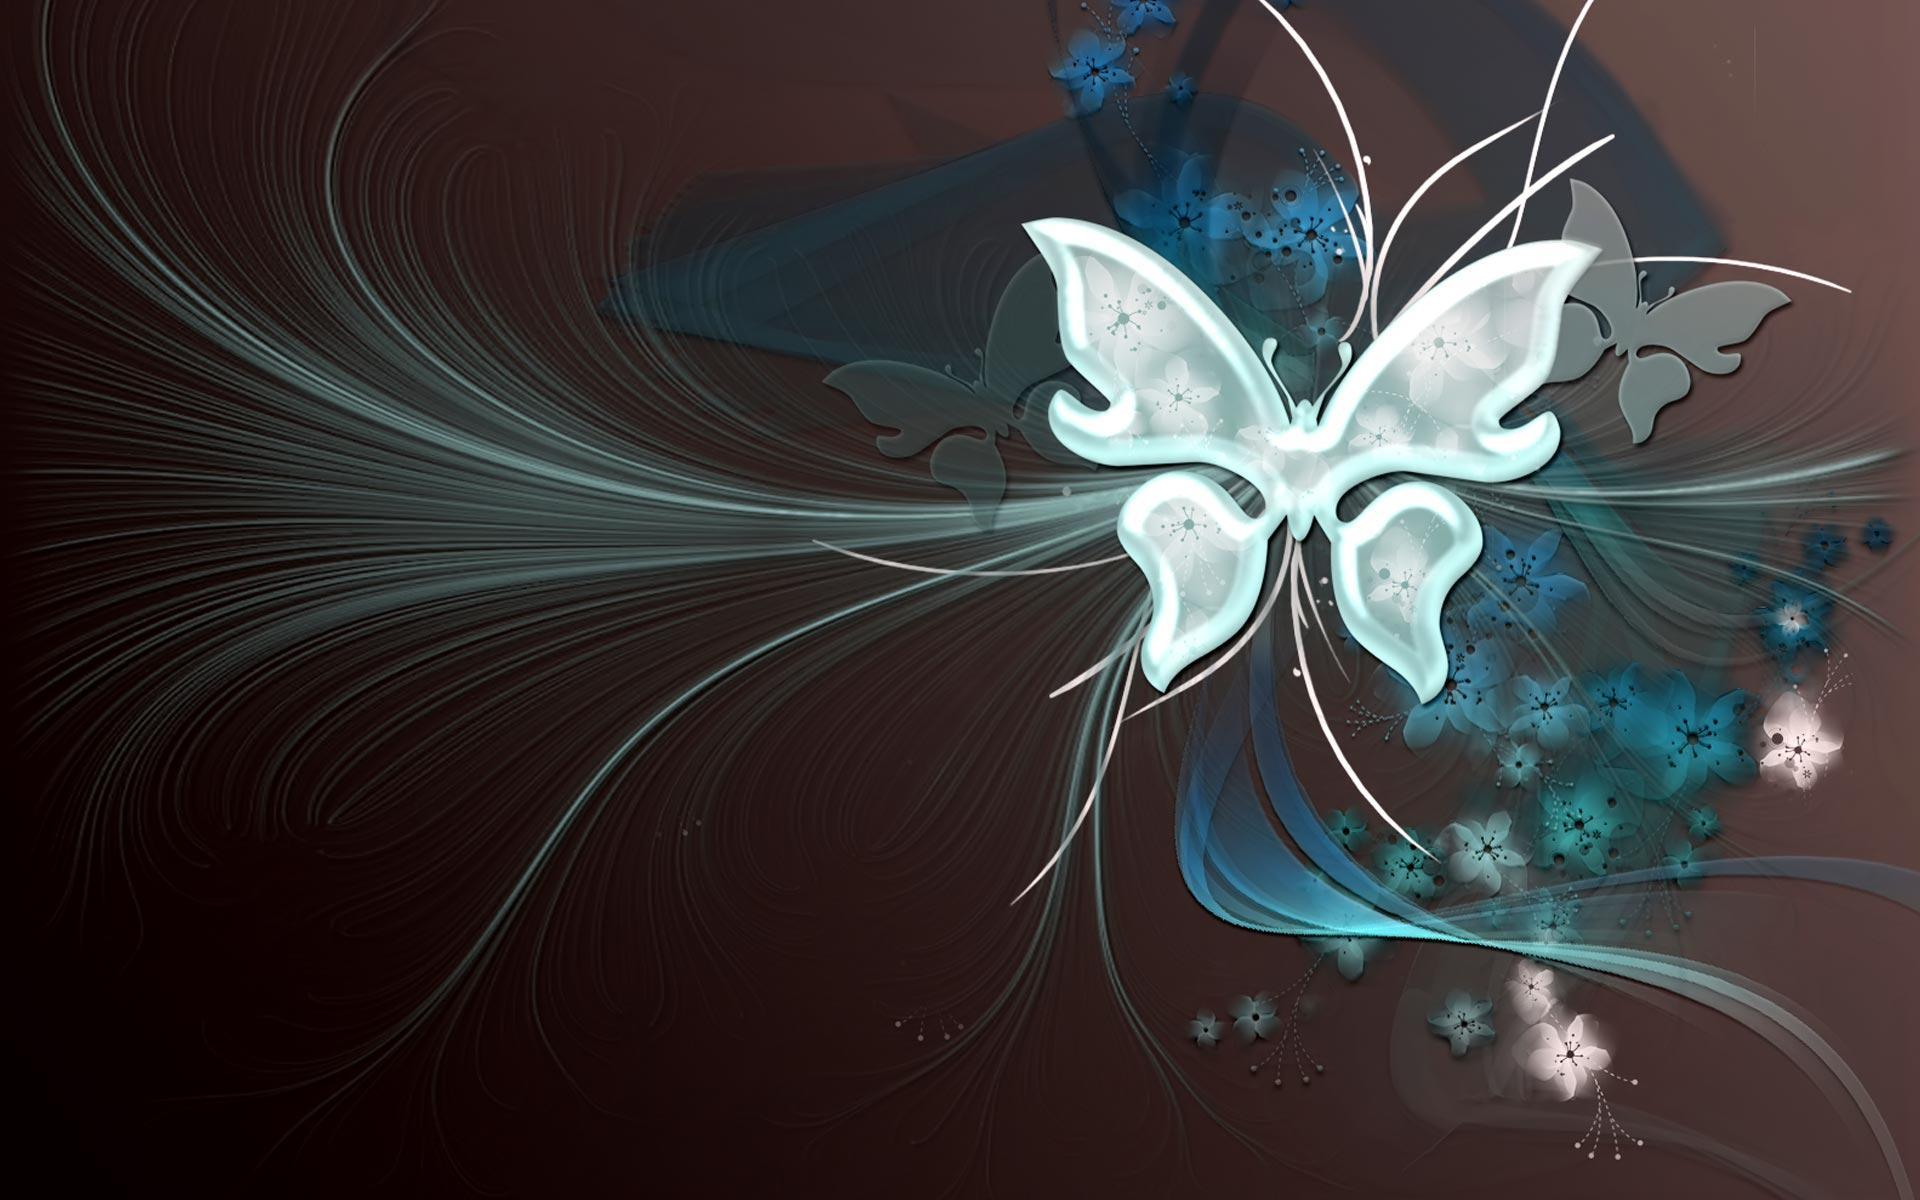 Butterfly desktop wallpapers wallpaper cave - Hd wallpaper for laptop 14 inch ...